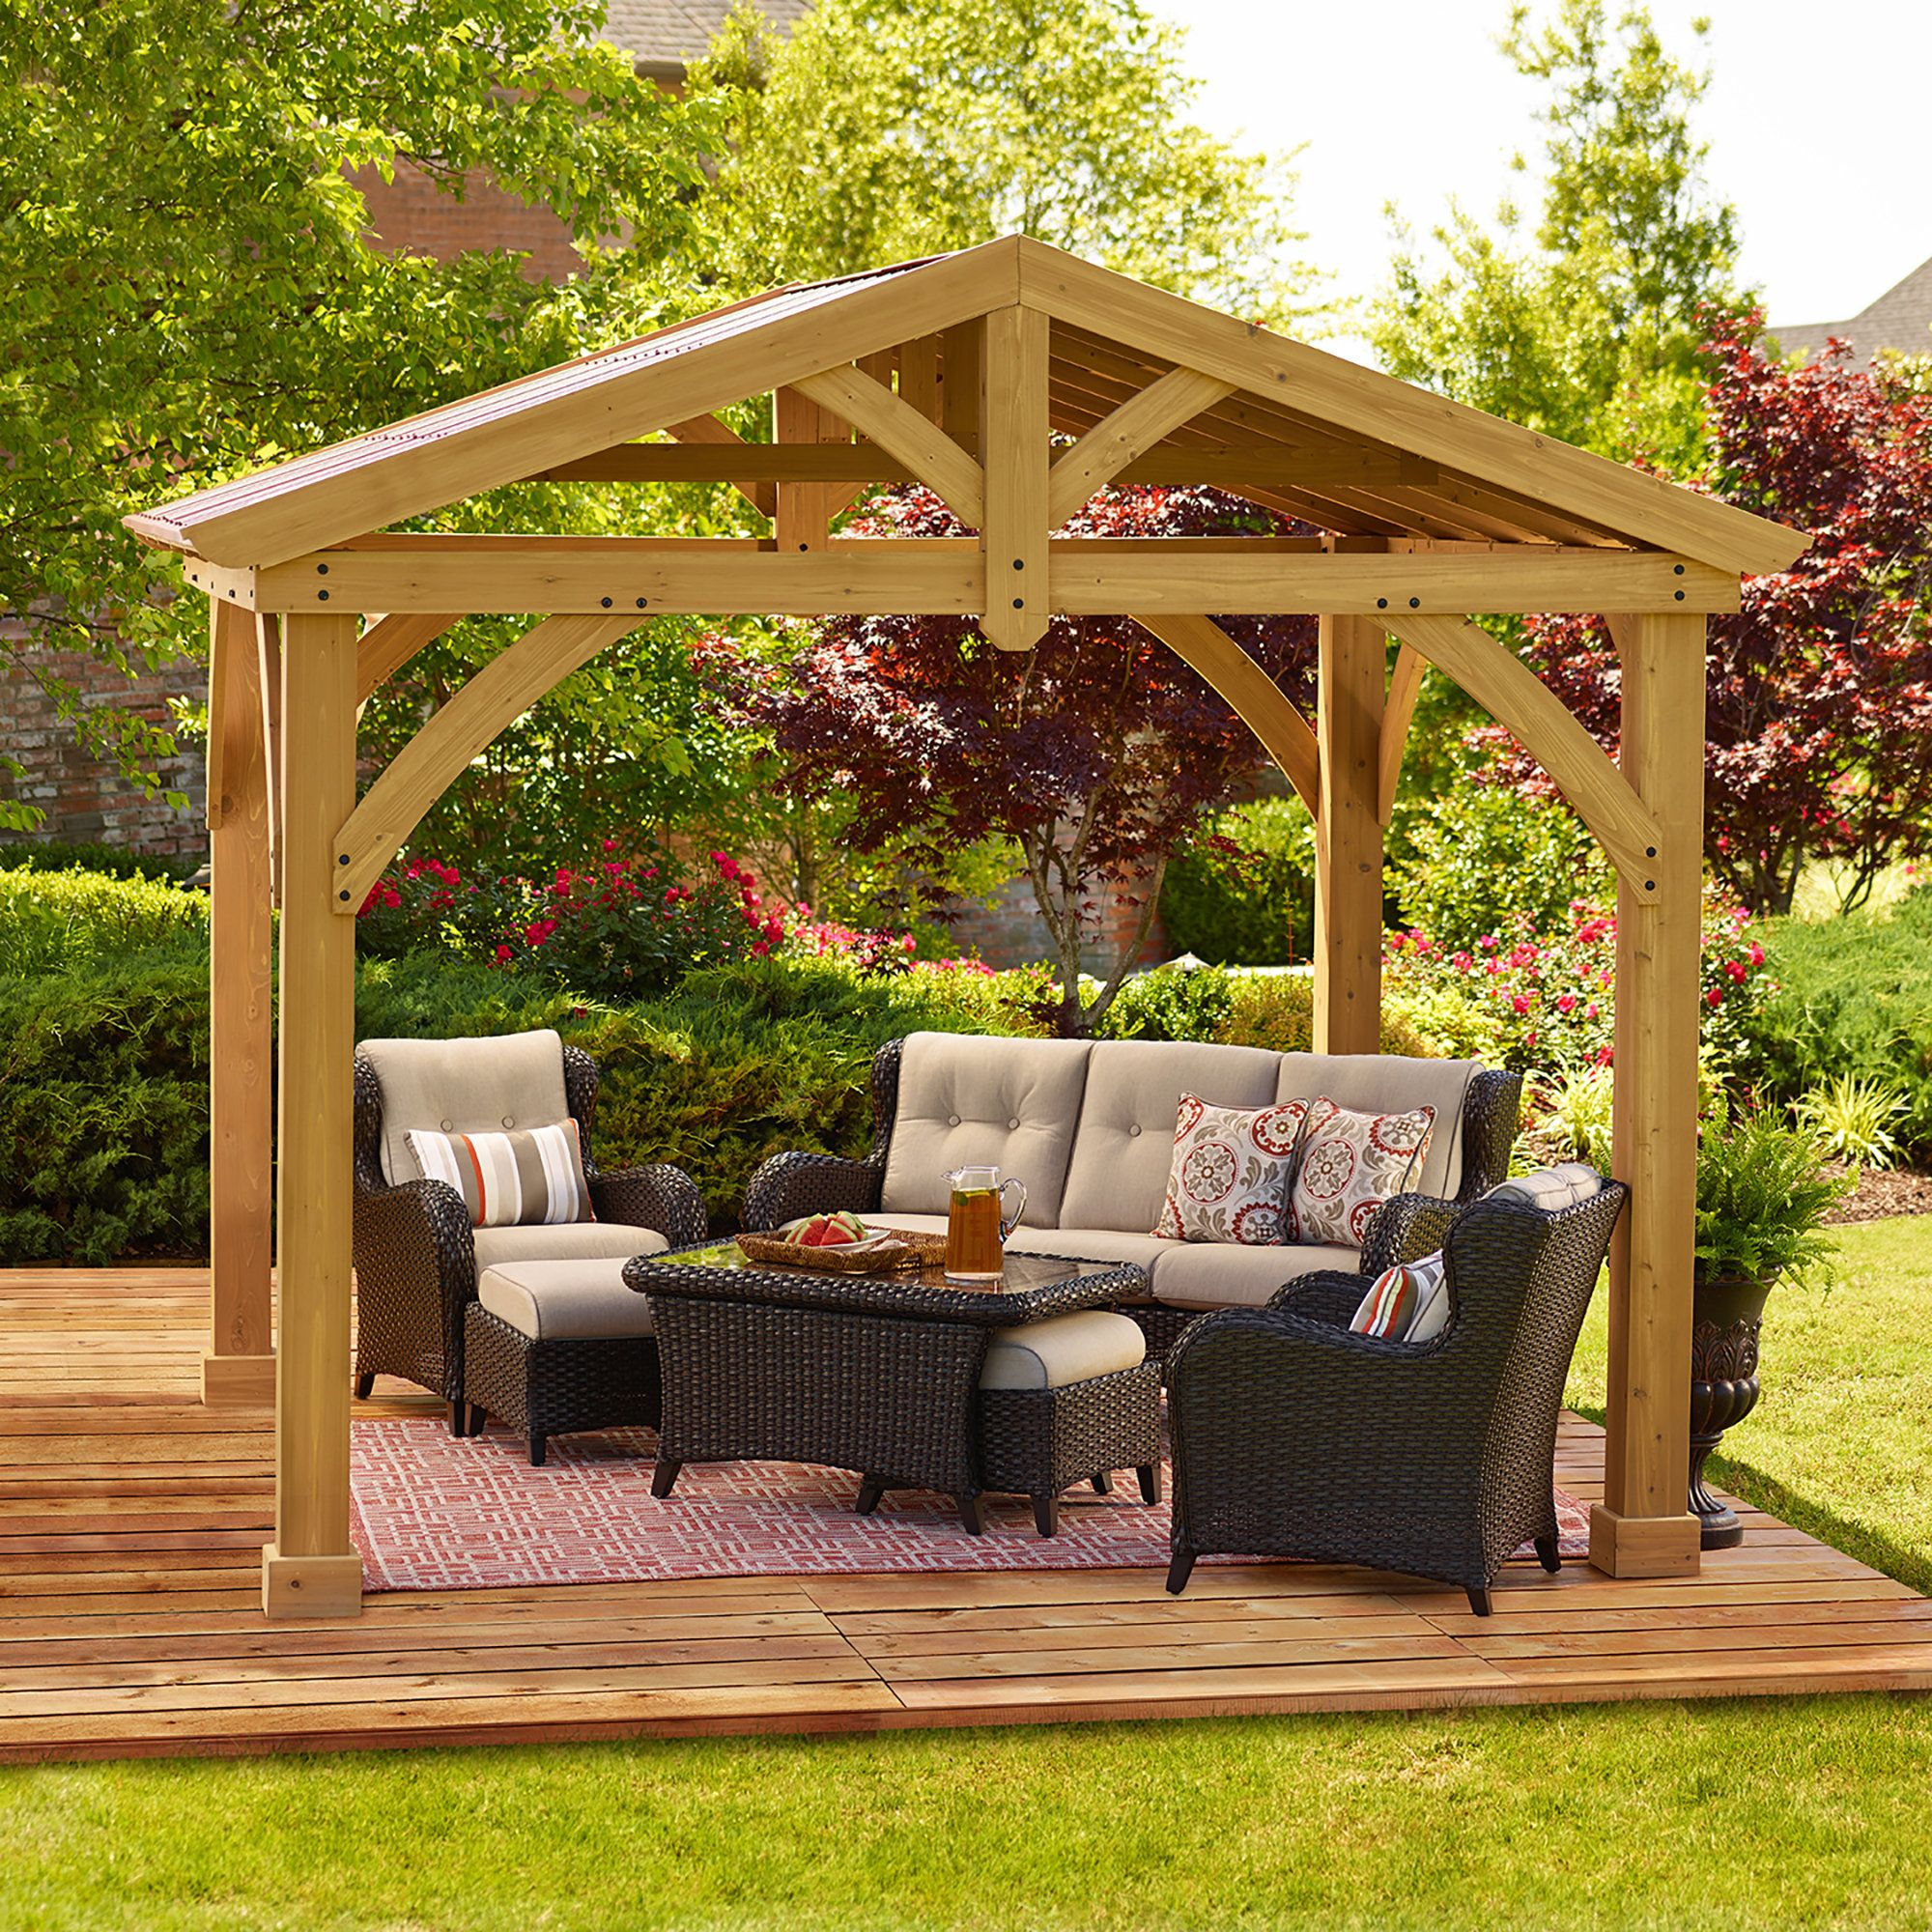 Avery Pavilion 10 Ft W X 12 Ft D Wood Permanent Gazebo Backyard Pavilion Patio Gazebo Backyard Patio